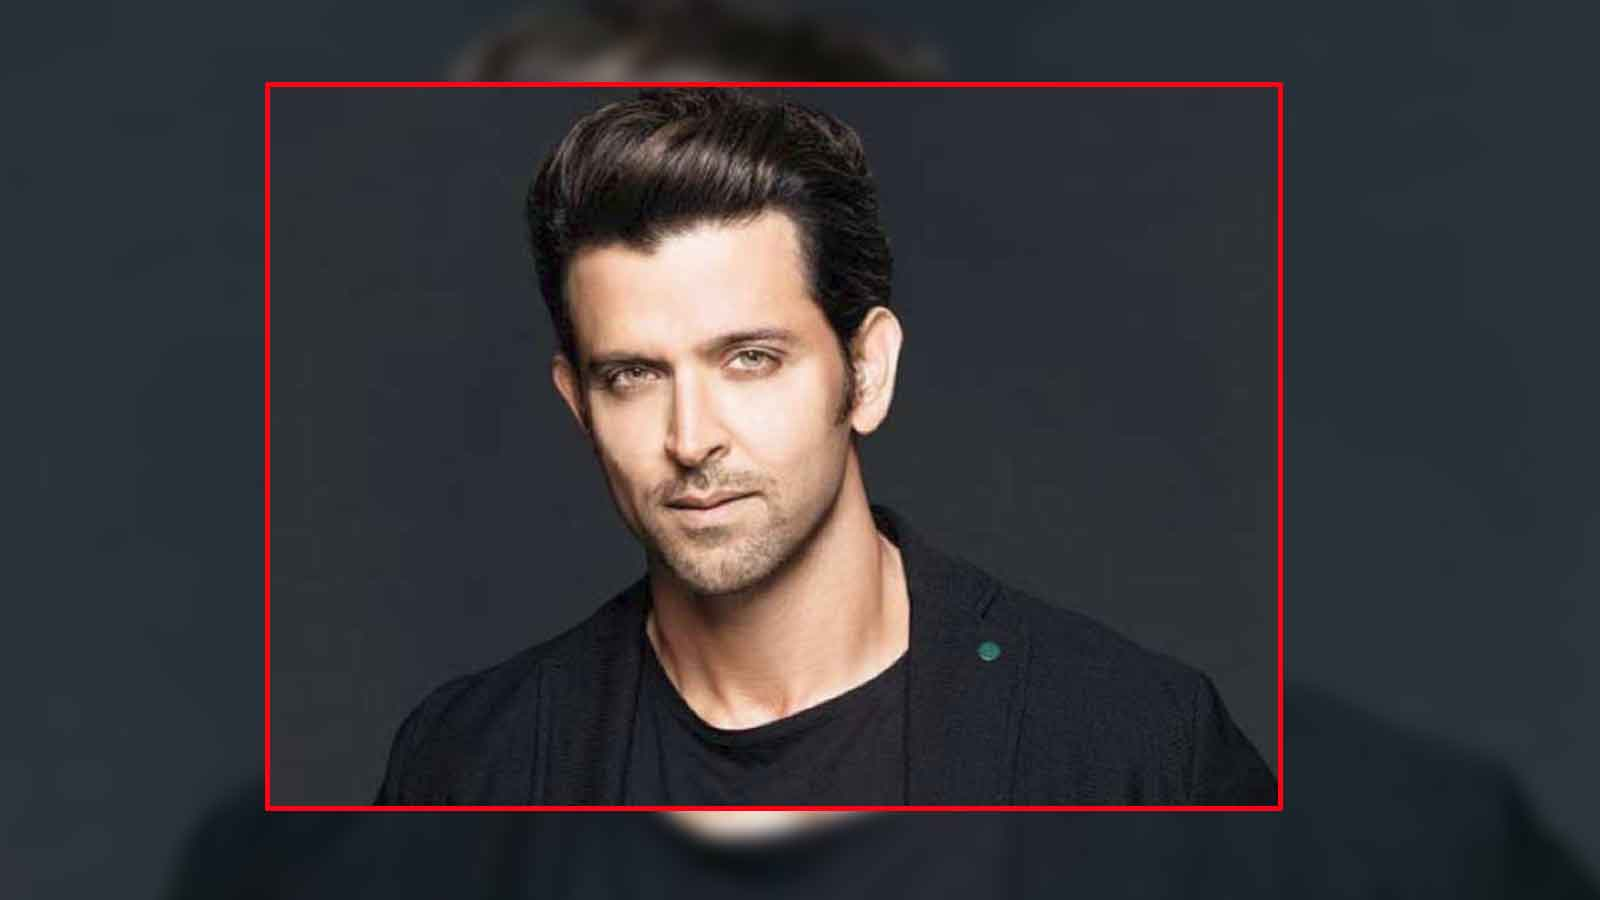 Hrithik Roshan booked in a case of cheating by Hyderabad police